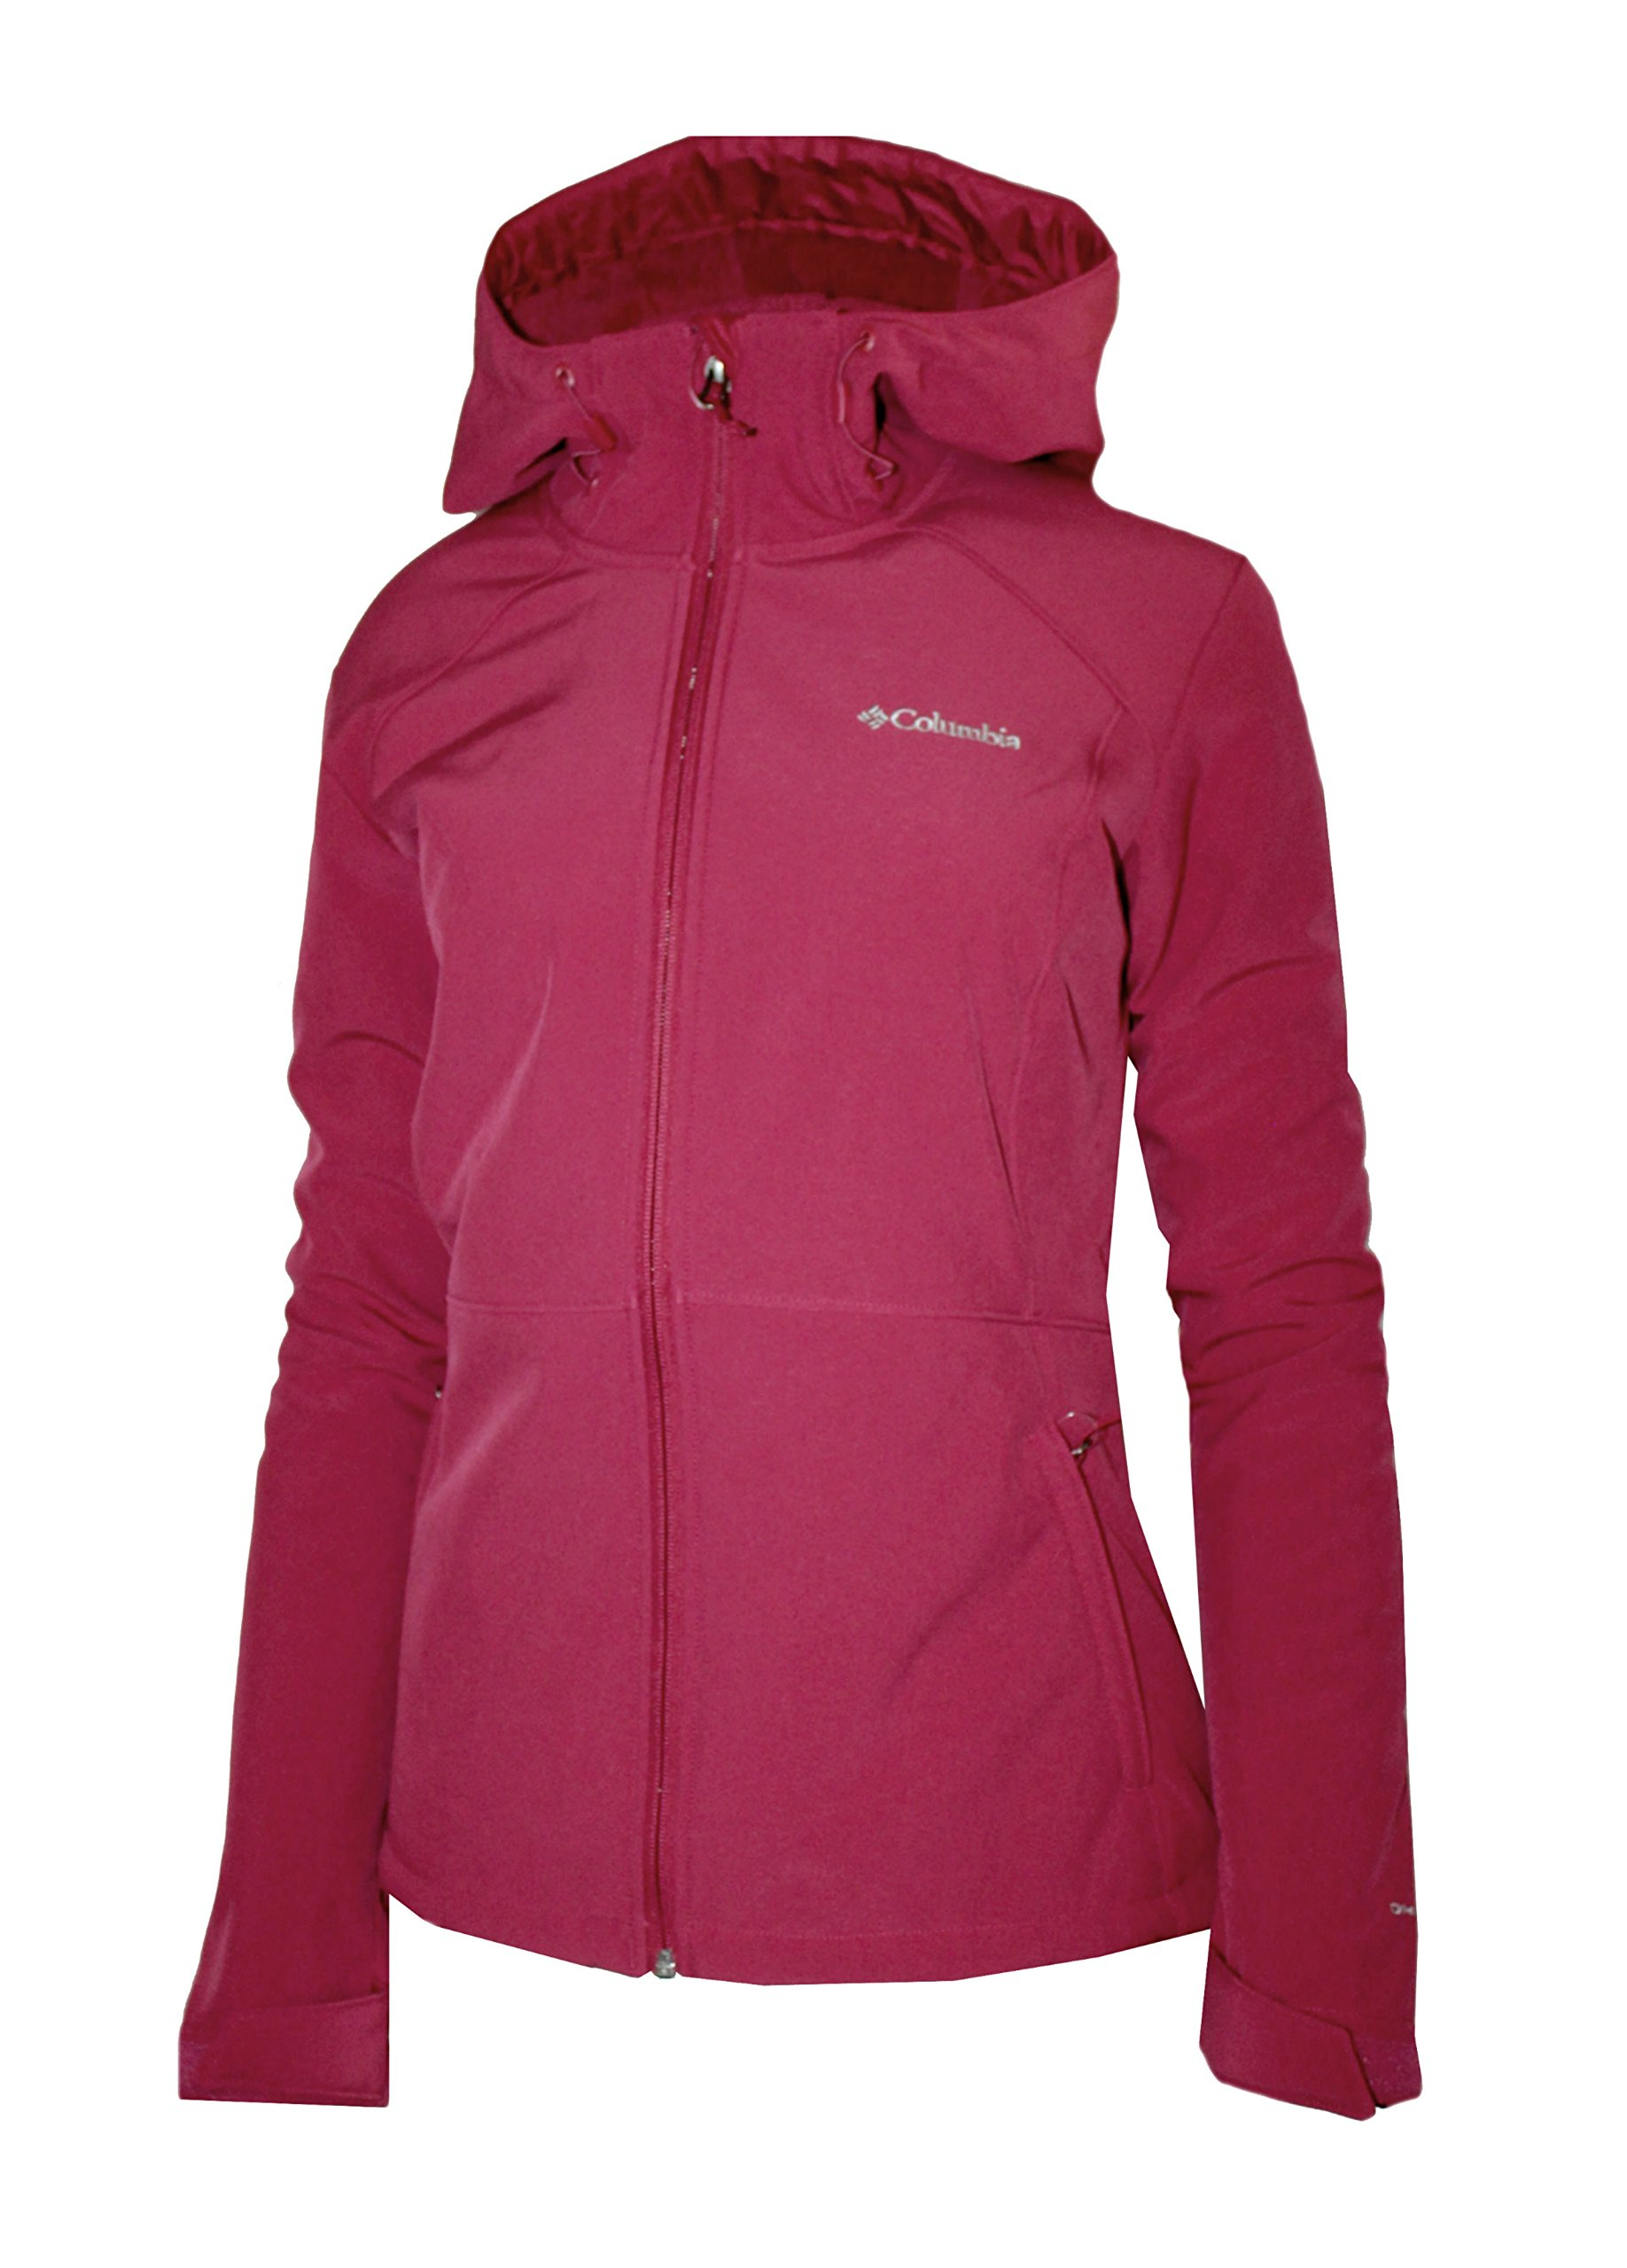 Columbia Womens Alpine Fir Windproof Fleece Lined Softshell Hooded Jacket,Red Orchid (Small)